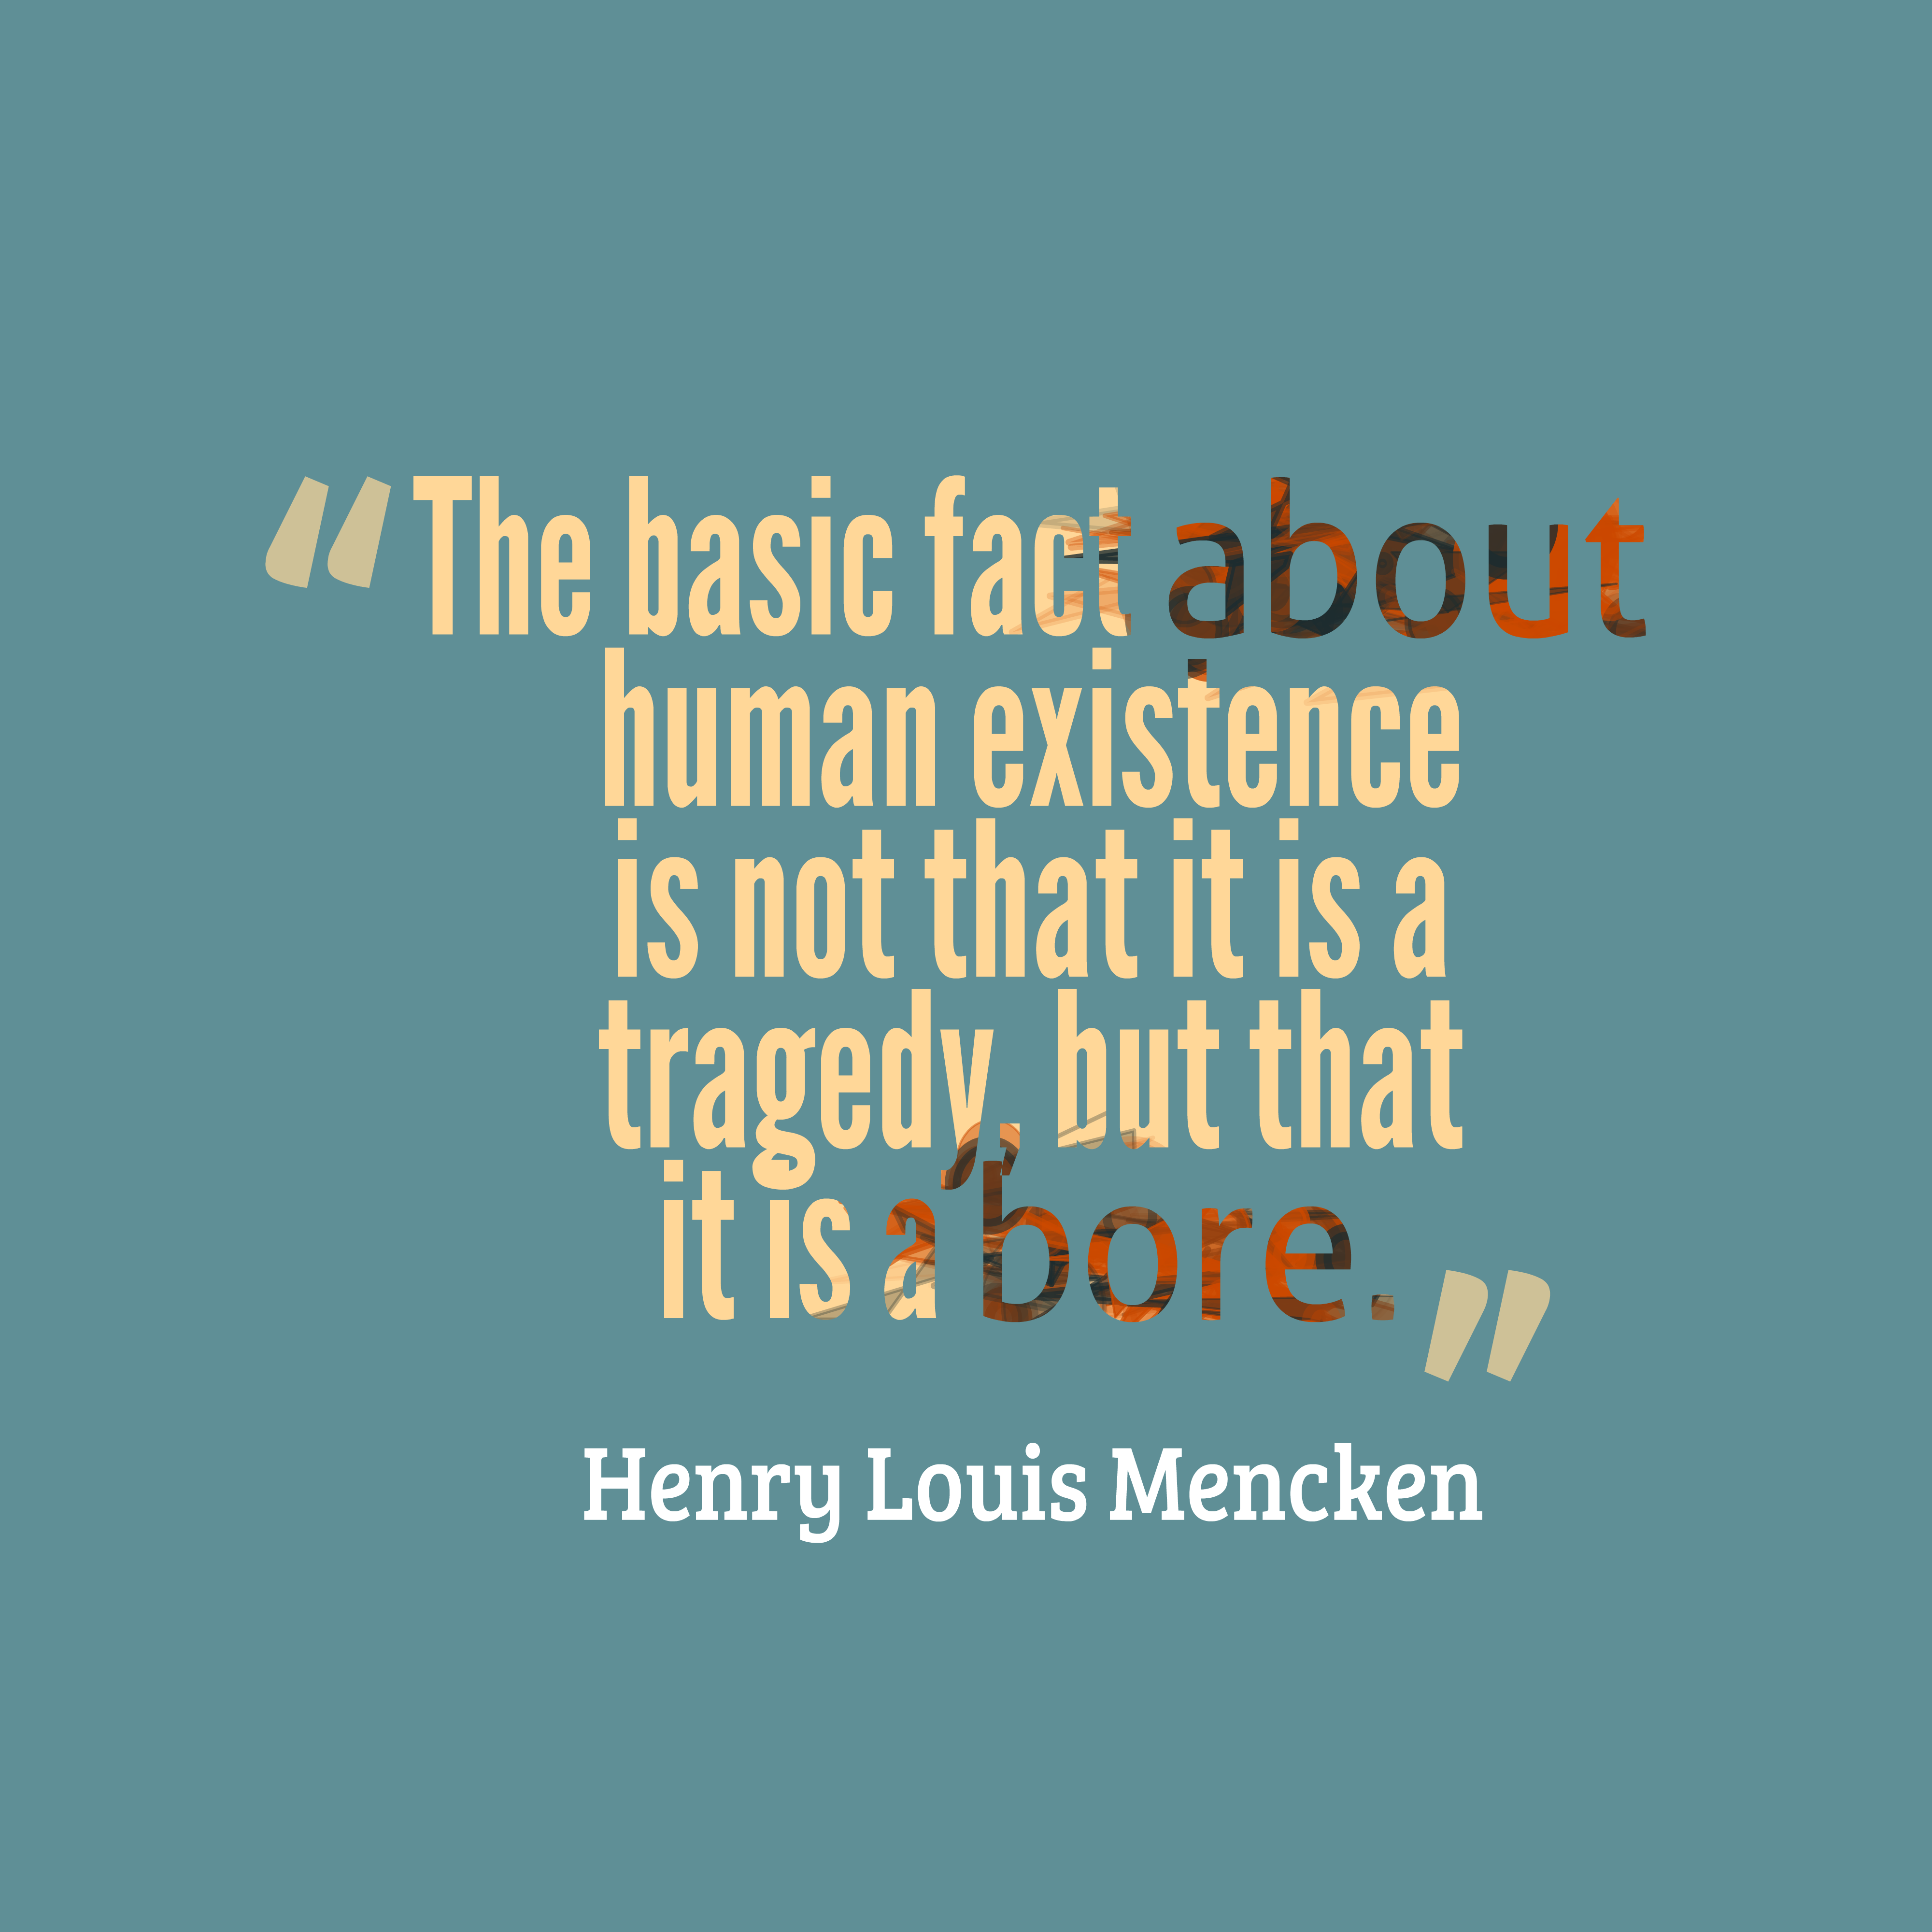 Quotes image of The basic fact about human existence is not that it is a tragedy, but that it is a bore.